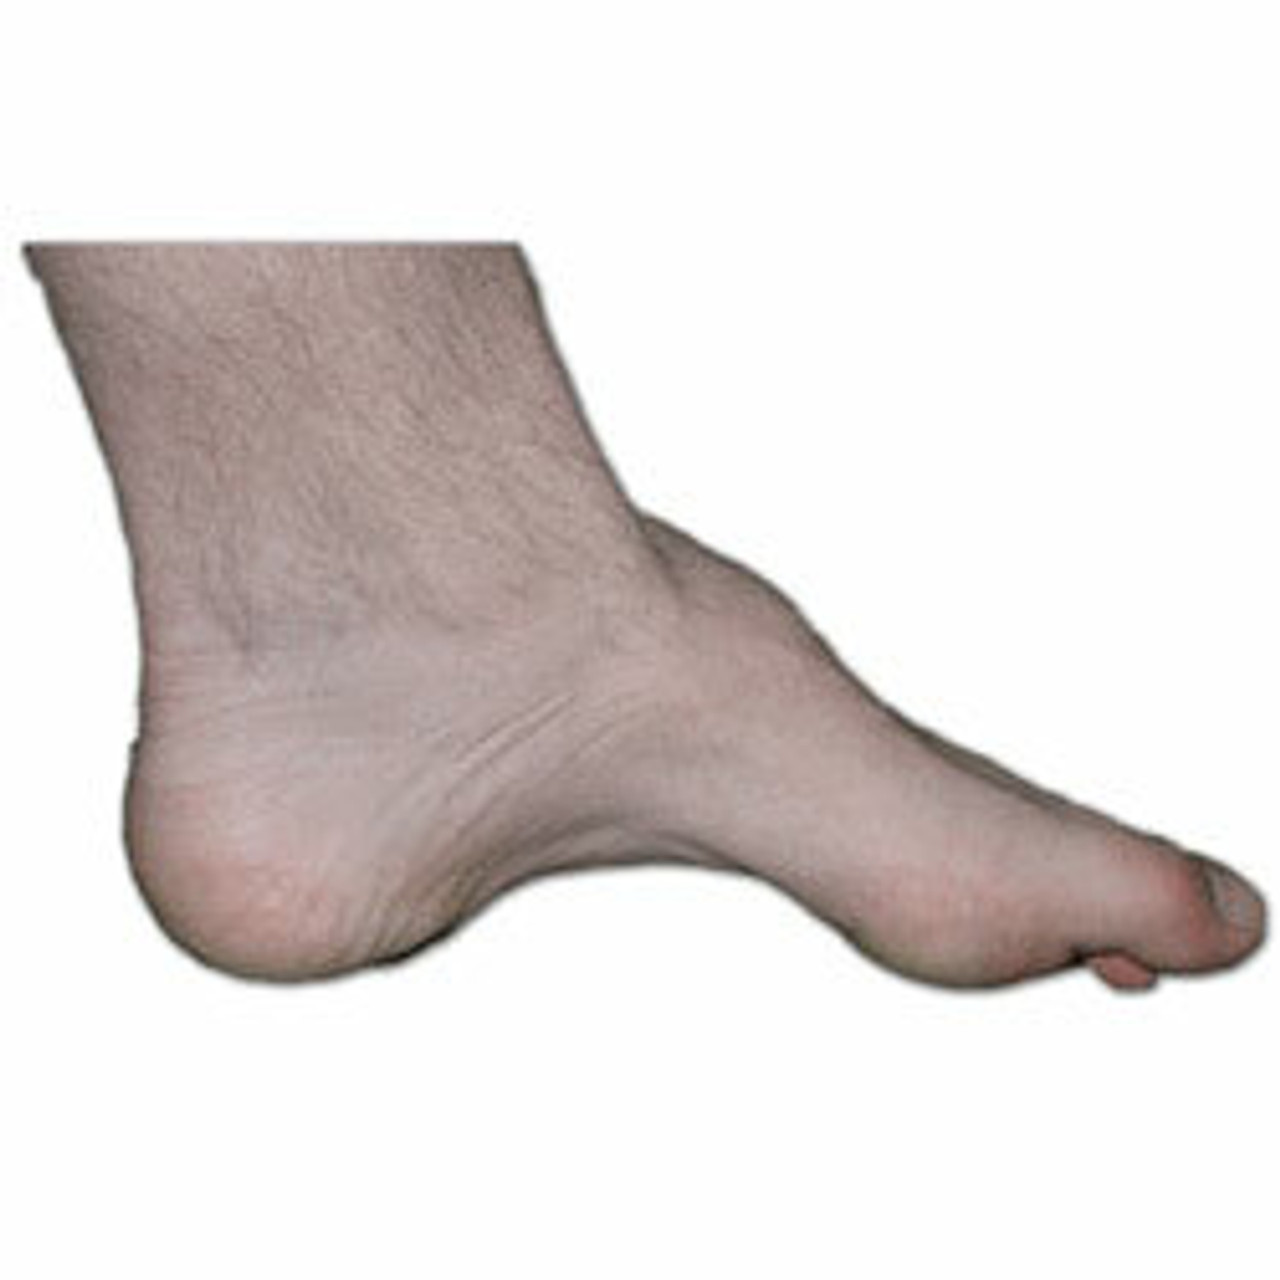 Charcot Foot Shoes | Shoe For Charcot Foot